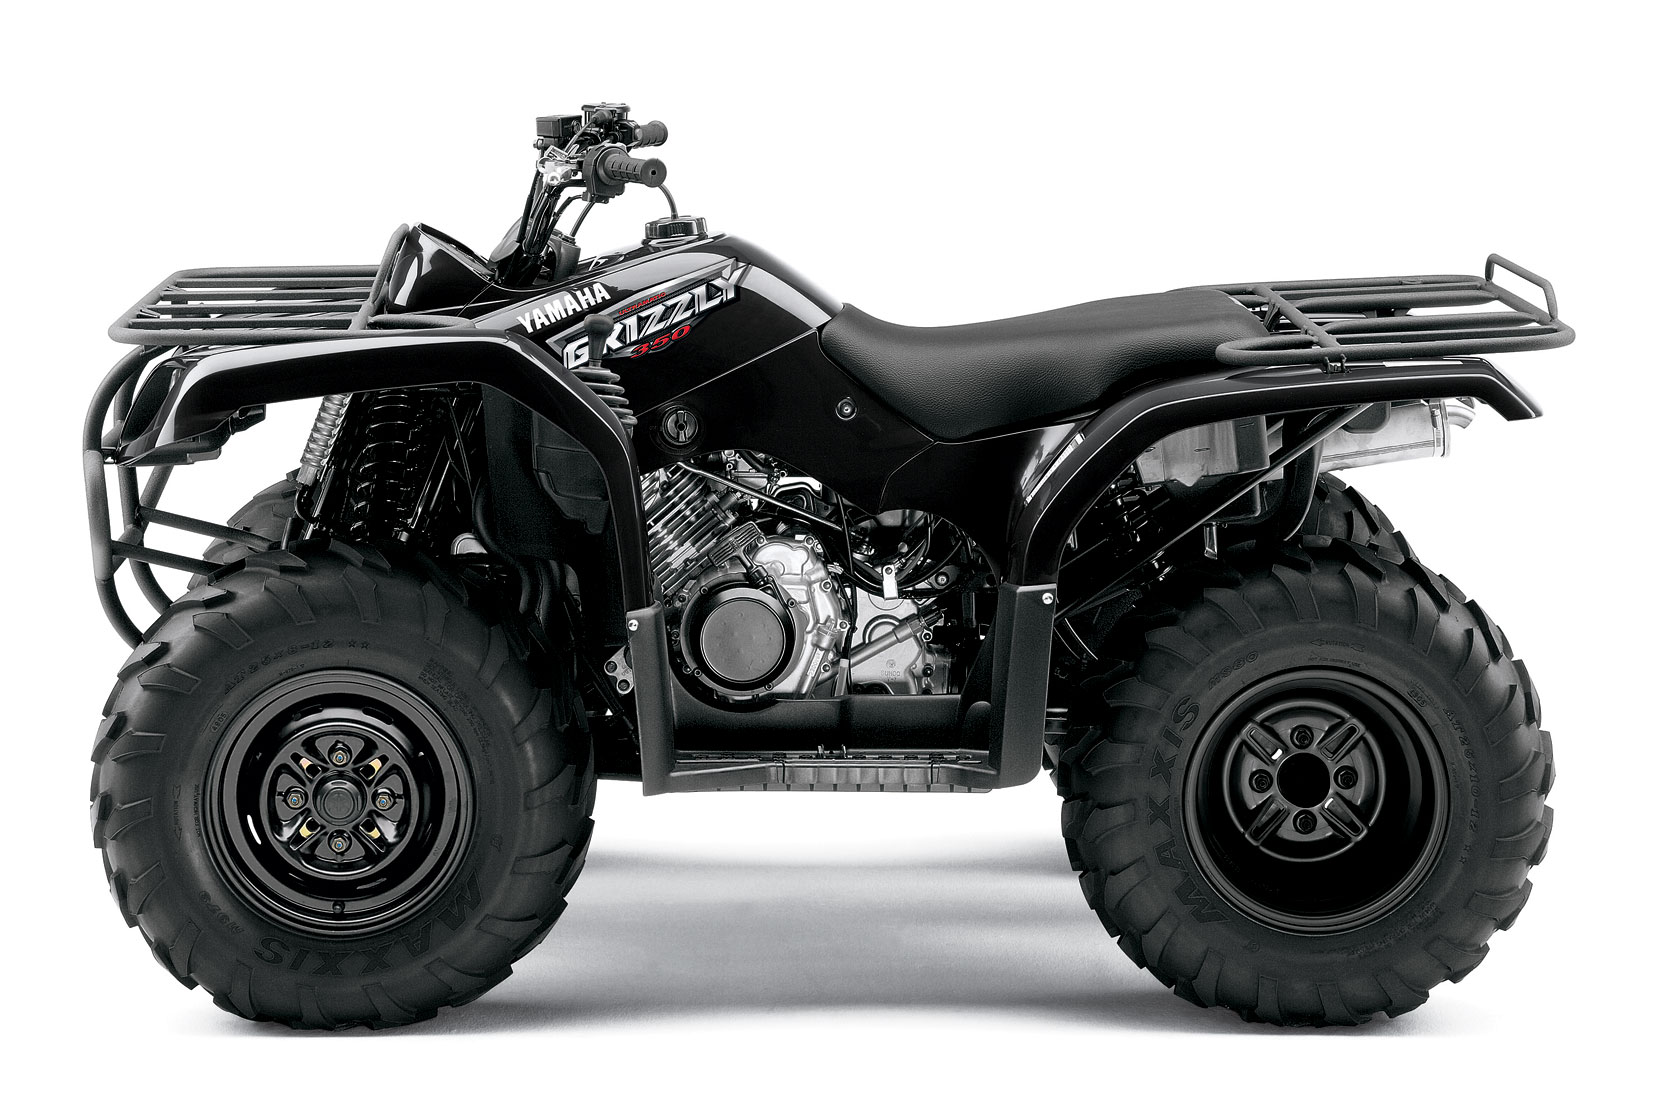 YAMAHAGrizzly3502WD 4116_2 yamaha grizzly 350 2wd specs 2008, 2009 autoevolution yamaha grizzly 350 wiring diagram at eliteediting.co